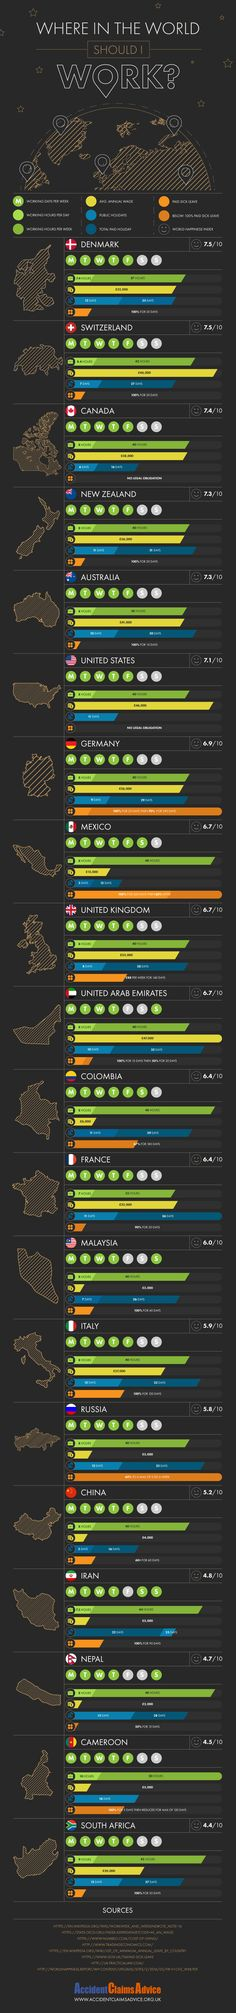 Where In The World Should I Work? #Infographic #Career #Travel